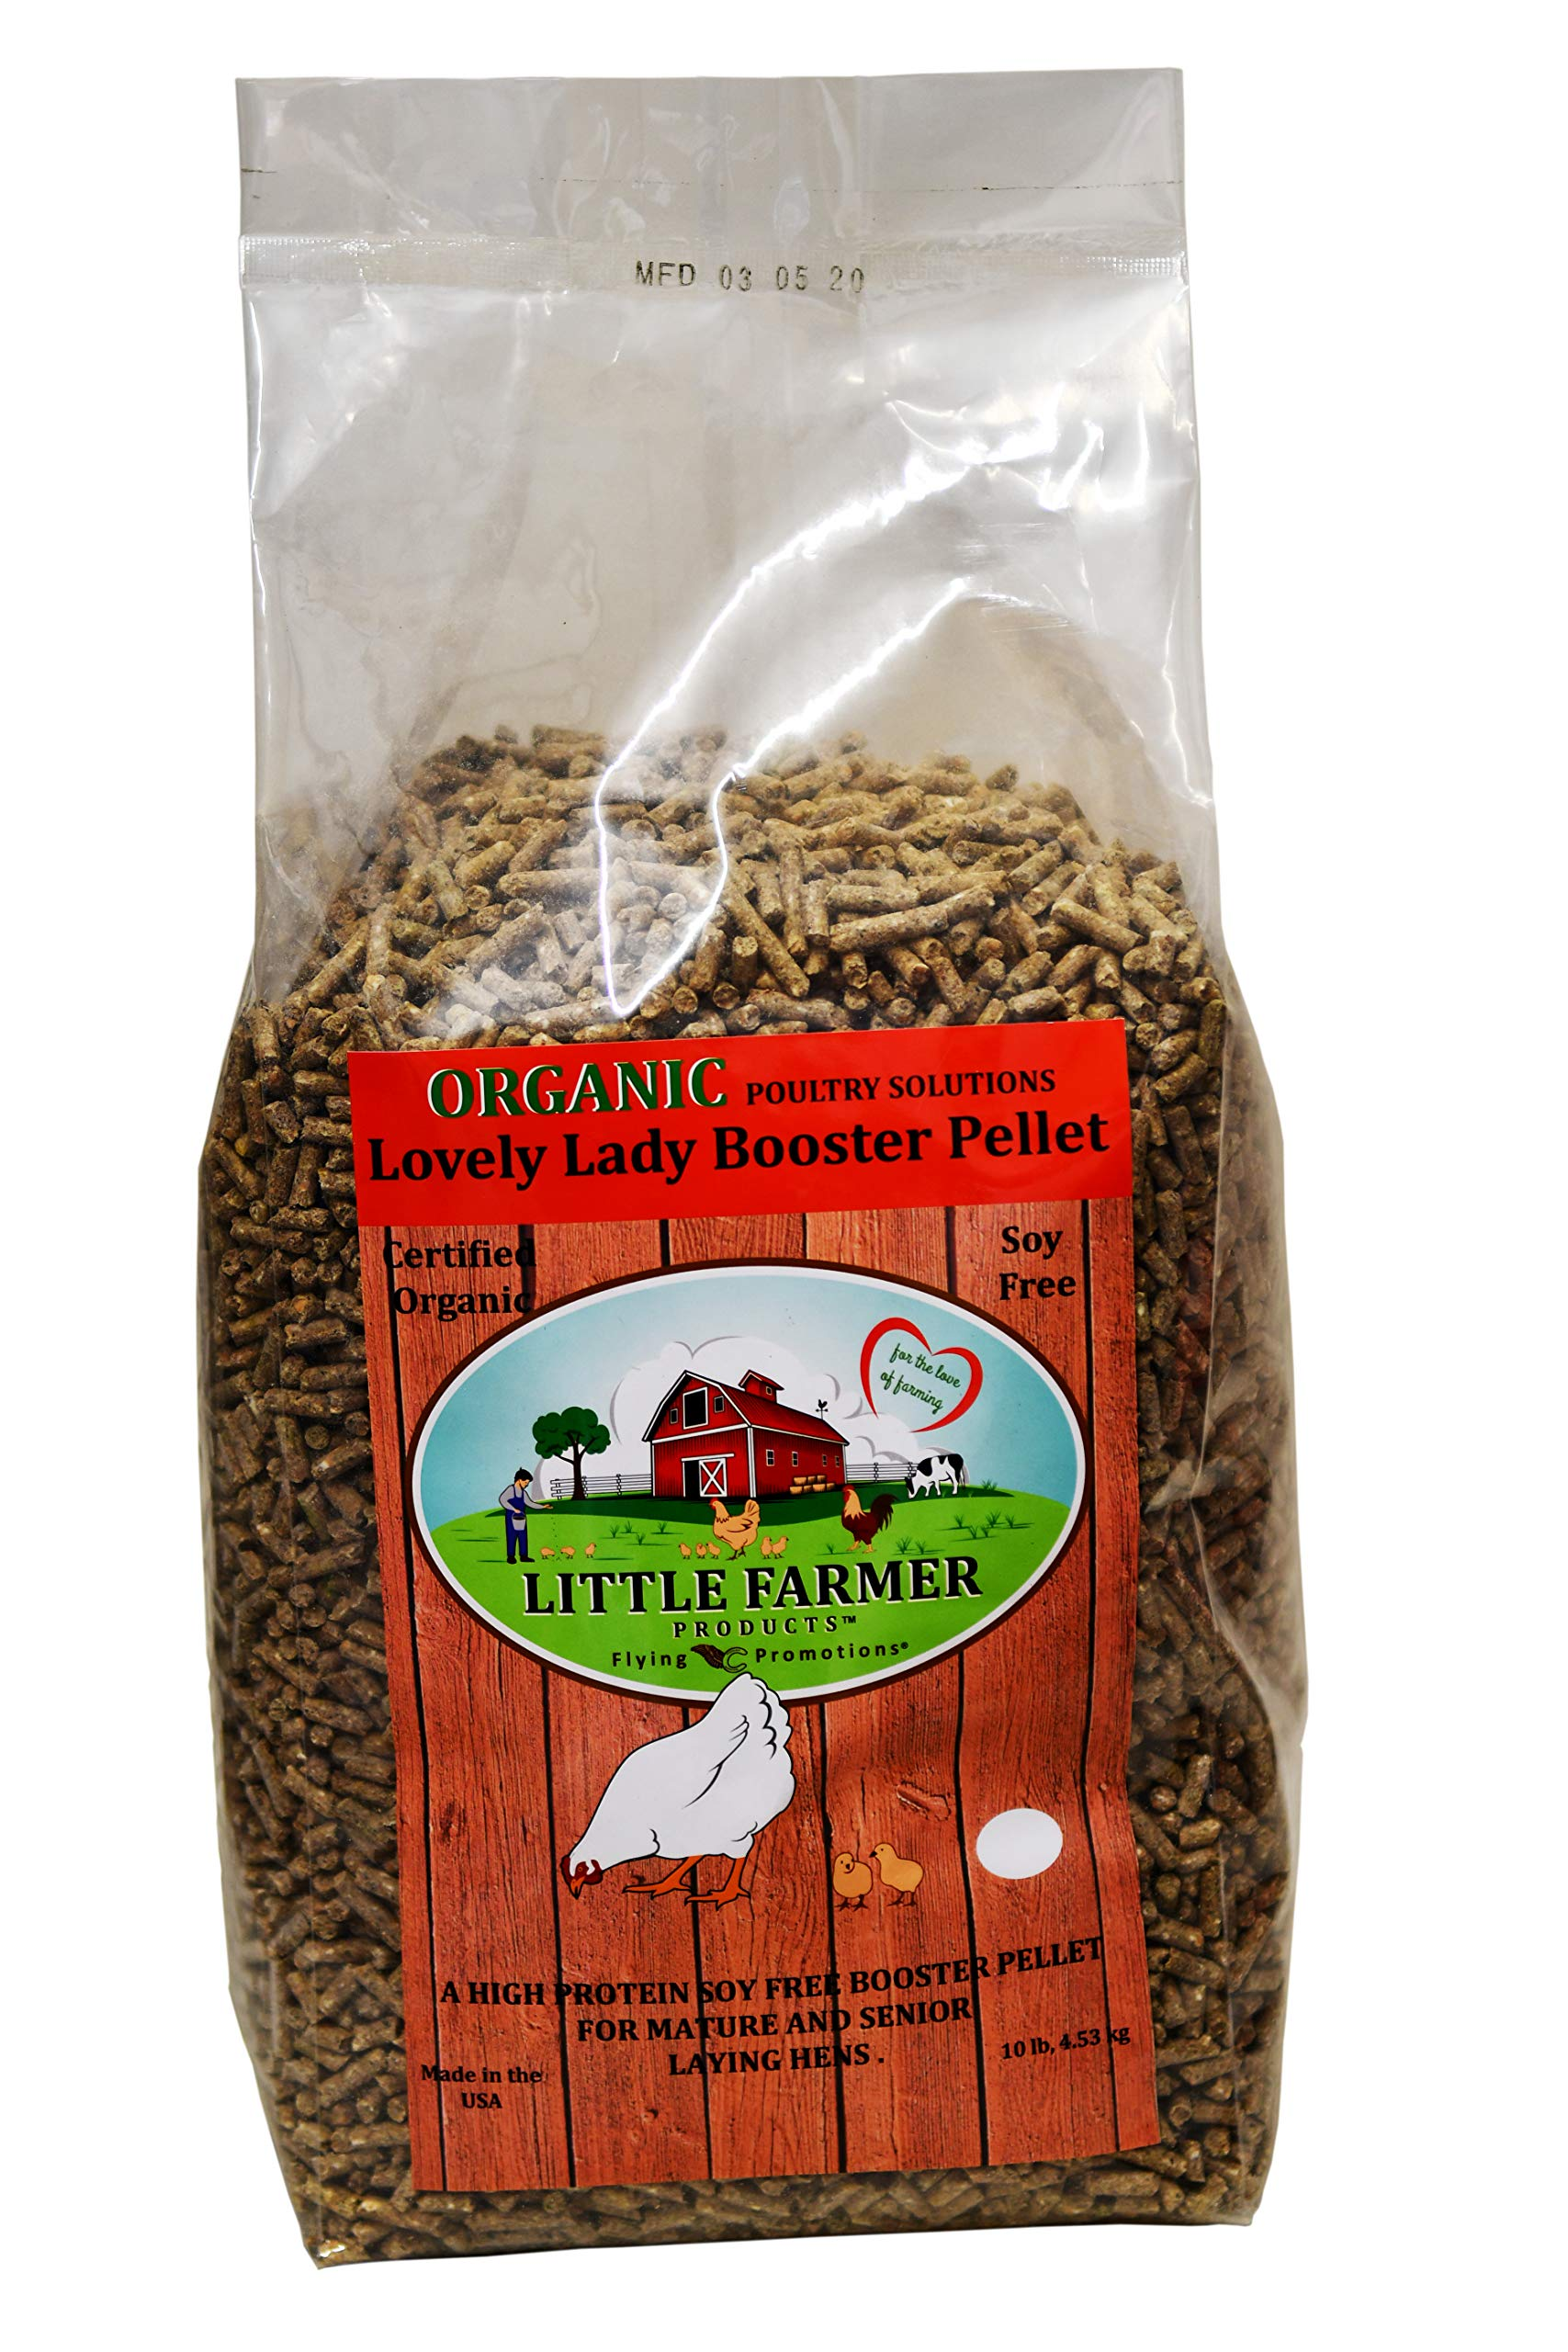 LITTLE FARMER PRODUCTS USDA Certified Organic Lovely Lady Booster Pellet, Non-GMO Soy-Free High Protein Poultry Layer Feed Supplement, Chicken Ration, 10 lbs